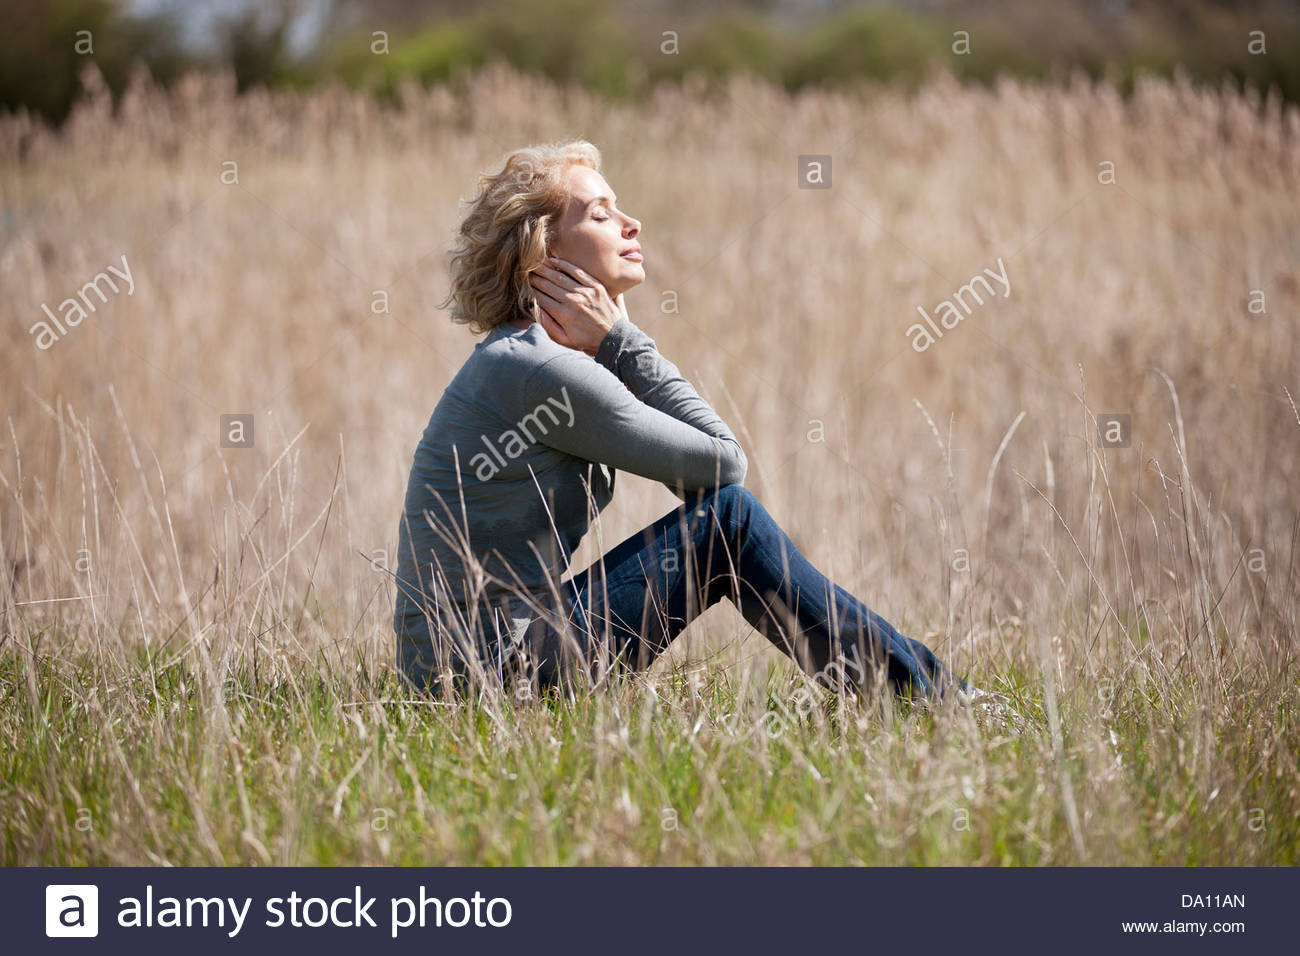 A mature woman sitting on the grass, le soleil brille, Photo Stock